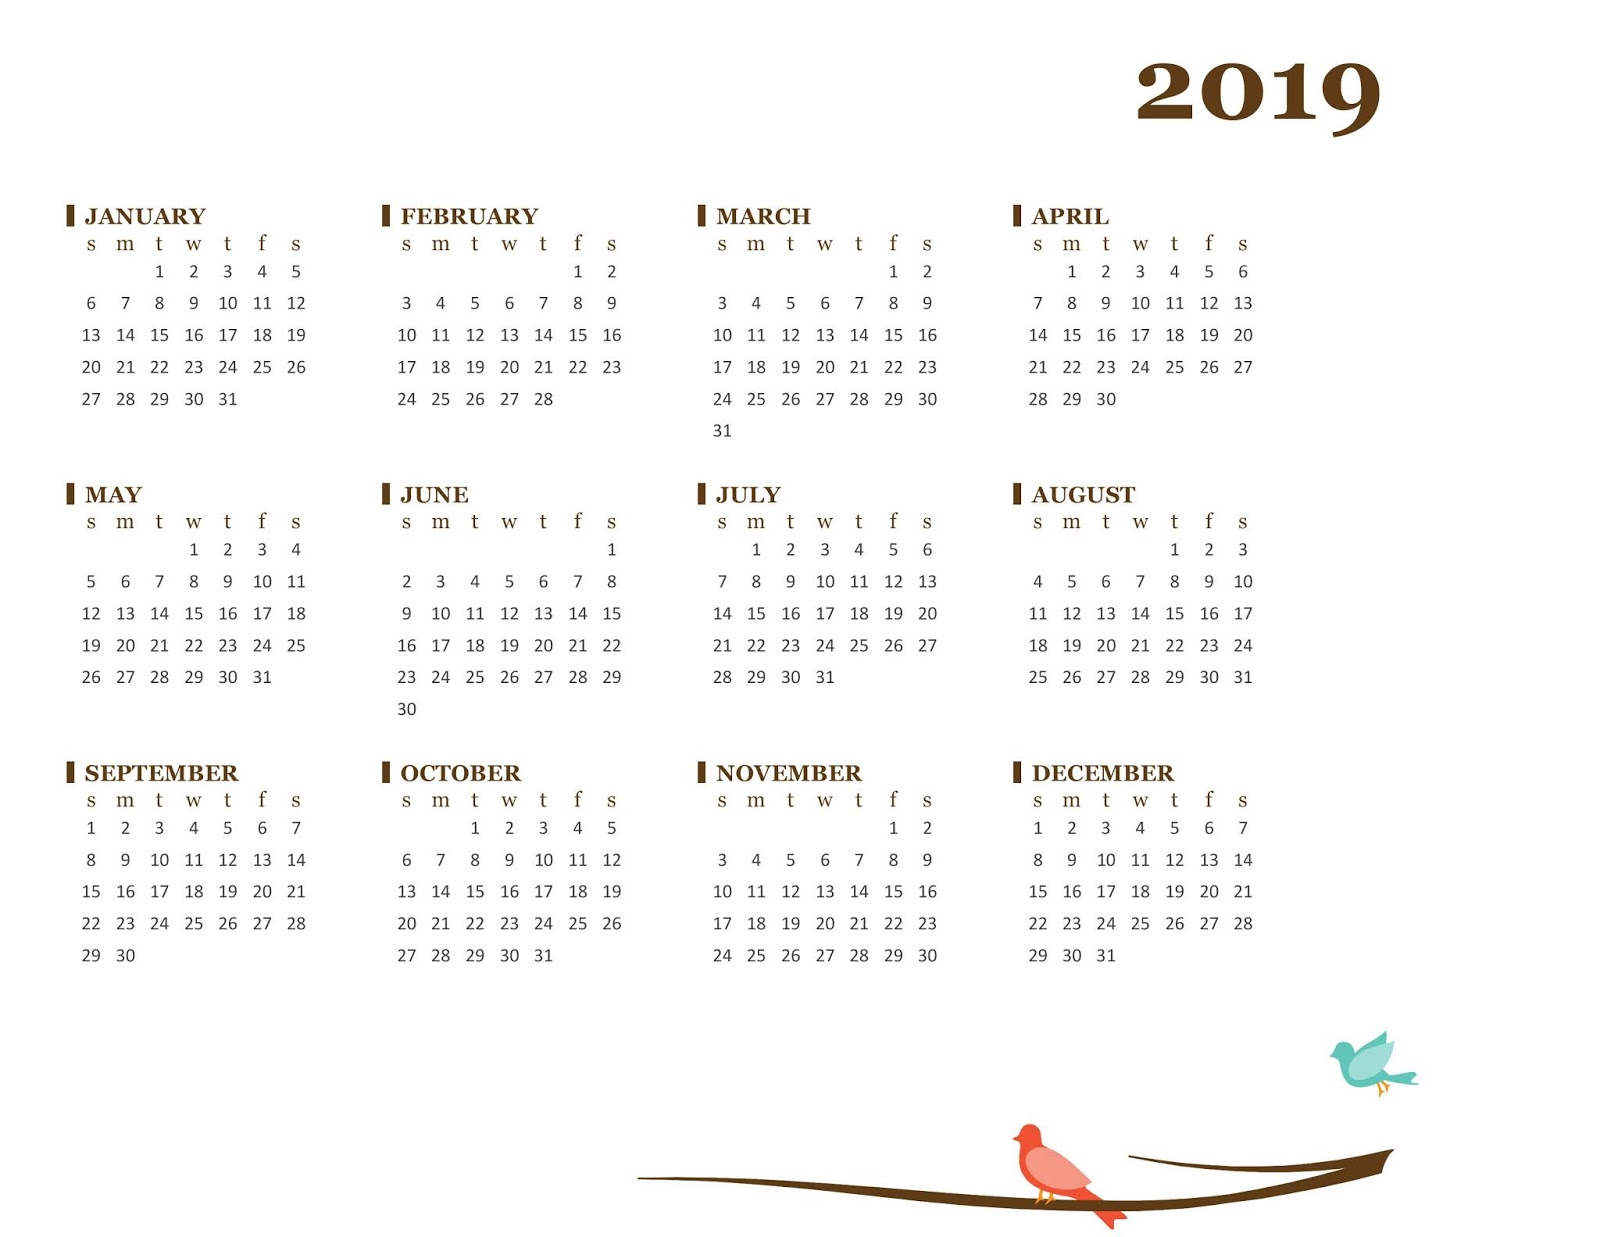 CALENDAR 2019 INDIAN HOLIDAYS - Hindu Calendar 2019: Indian